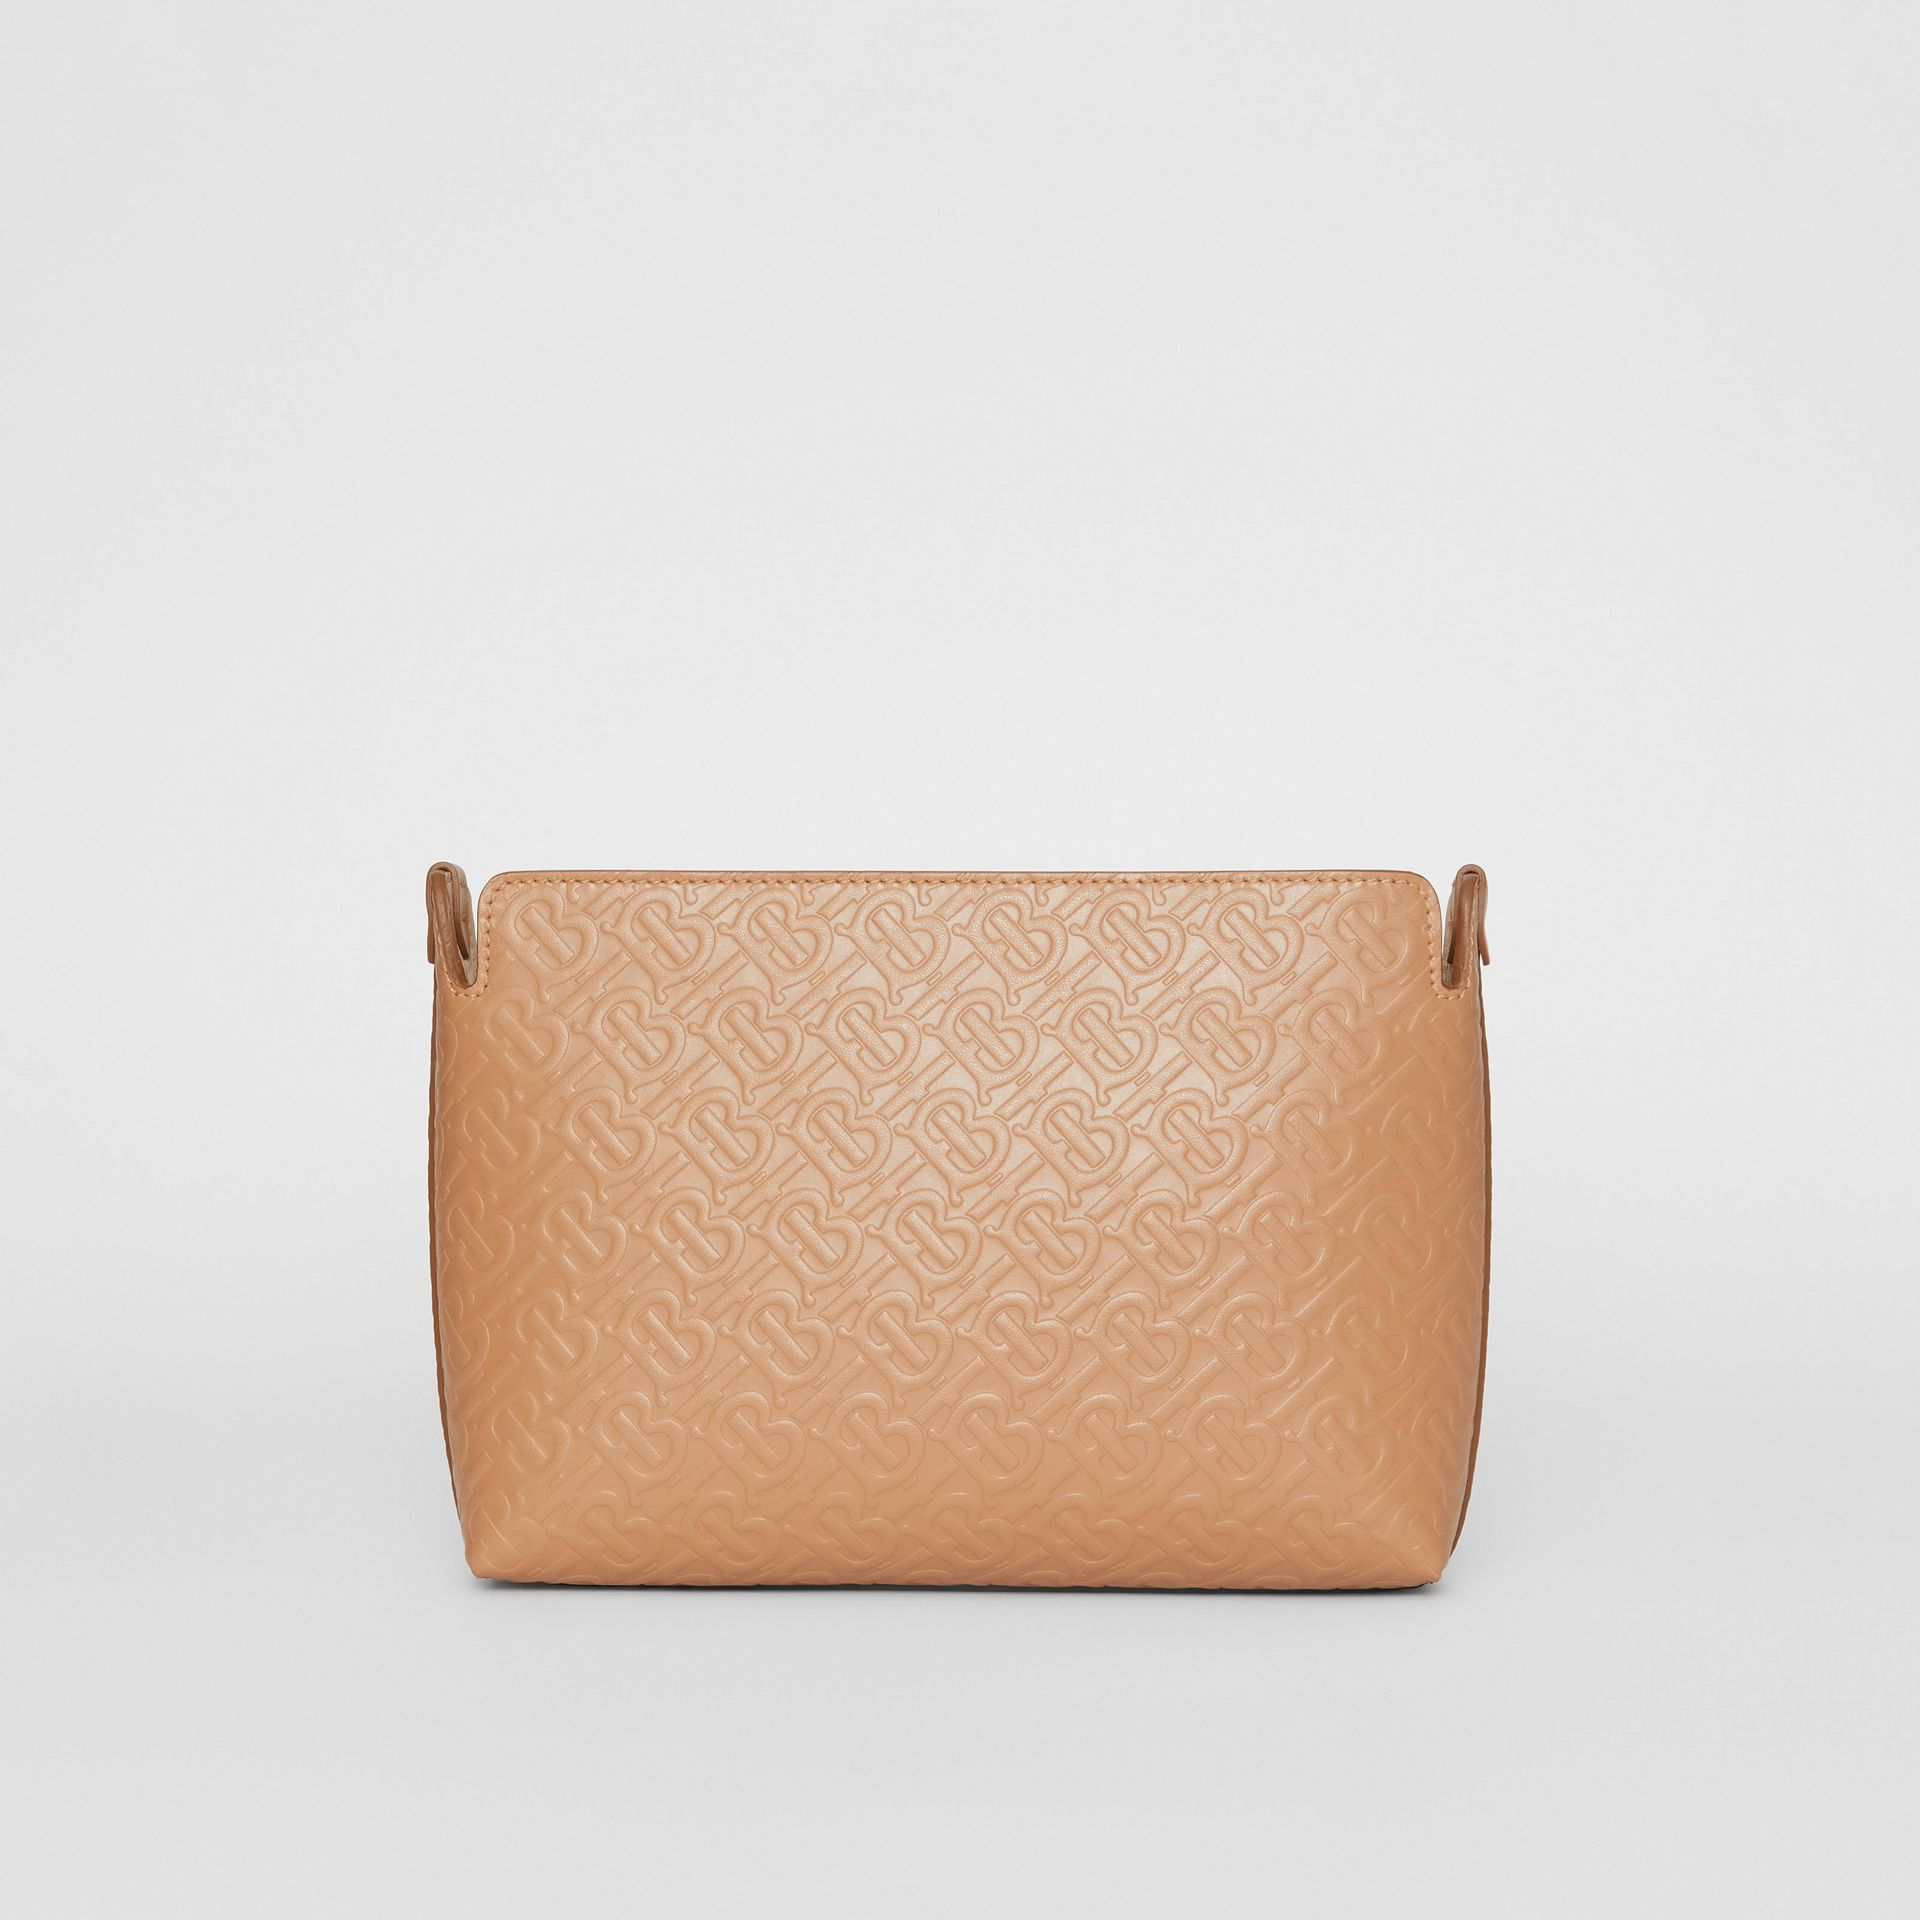 Medium Monogram Leather Clutch in Light Camel - Women | Burberry United Kingdom - gallery image 6